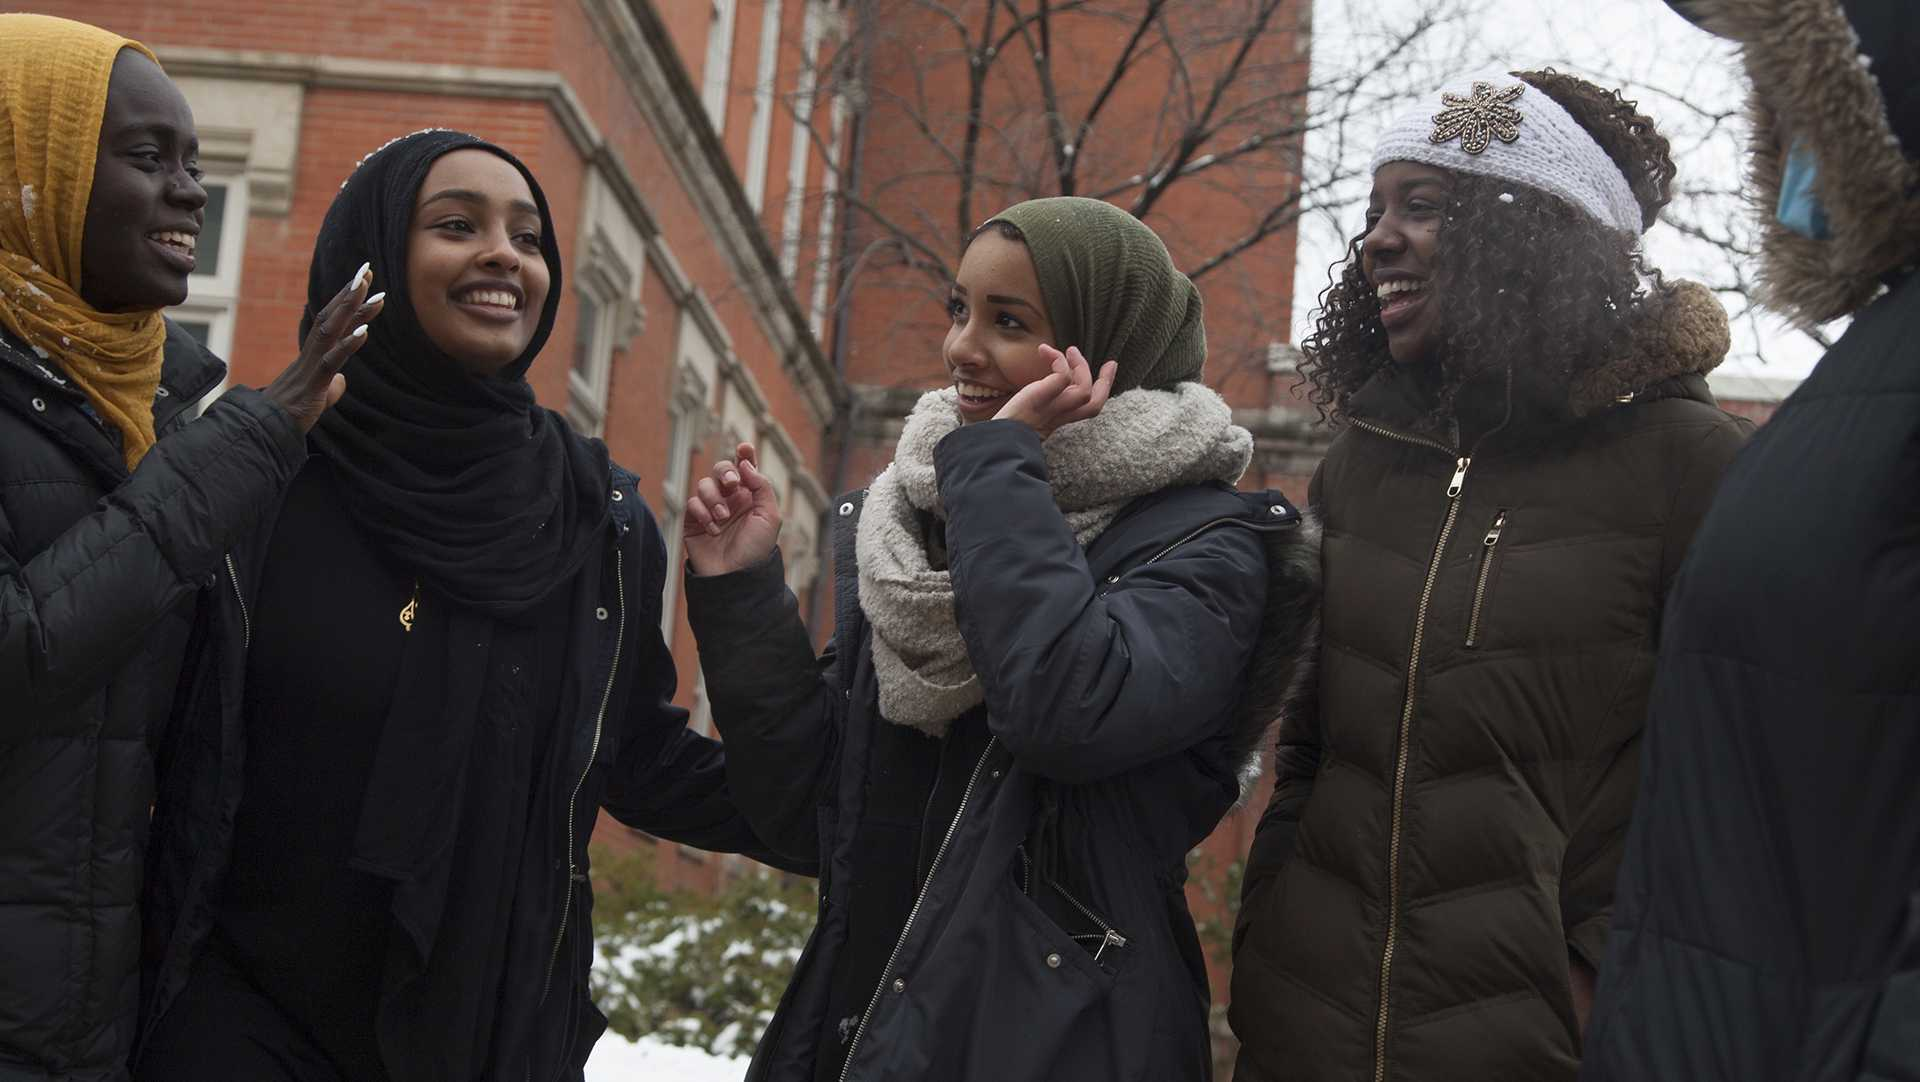 Members of the UI Muslim Student Association: sophomore Tartil Ali, freshman Ebteehal Kmail, sophomore Seeme Kotoh, sophomore Amani Ali, junior Ayah Taha, junior Taimaa Shoukih, and sophomore Suha Suleman throw snowball after passing out flowers for Islam appreciation week on the T. Anne Cleary Walkway on April 9, 2018.